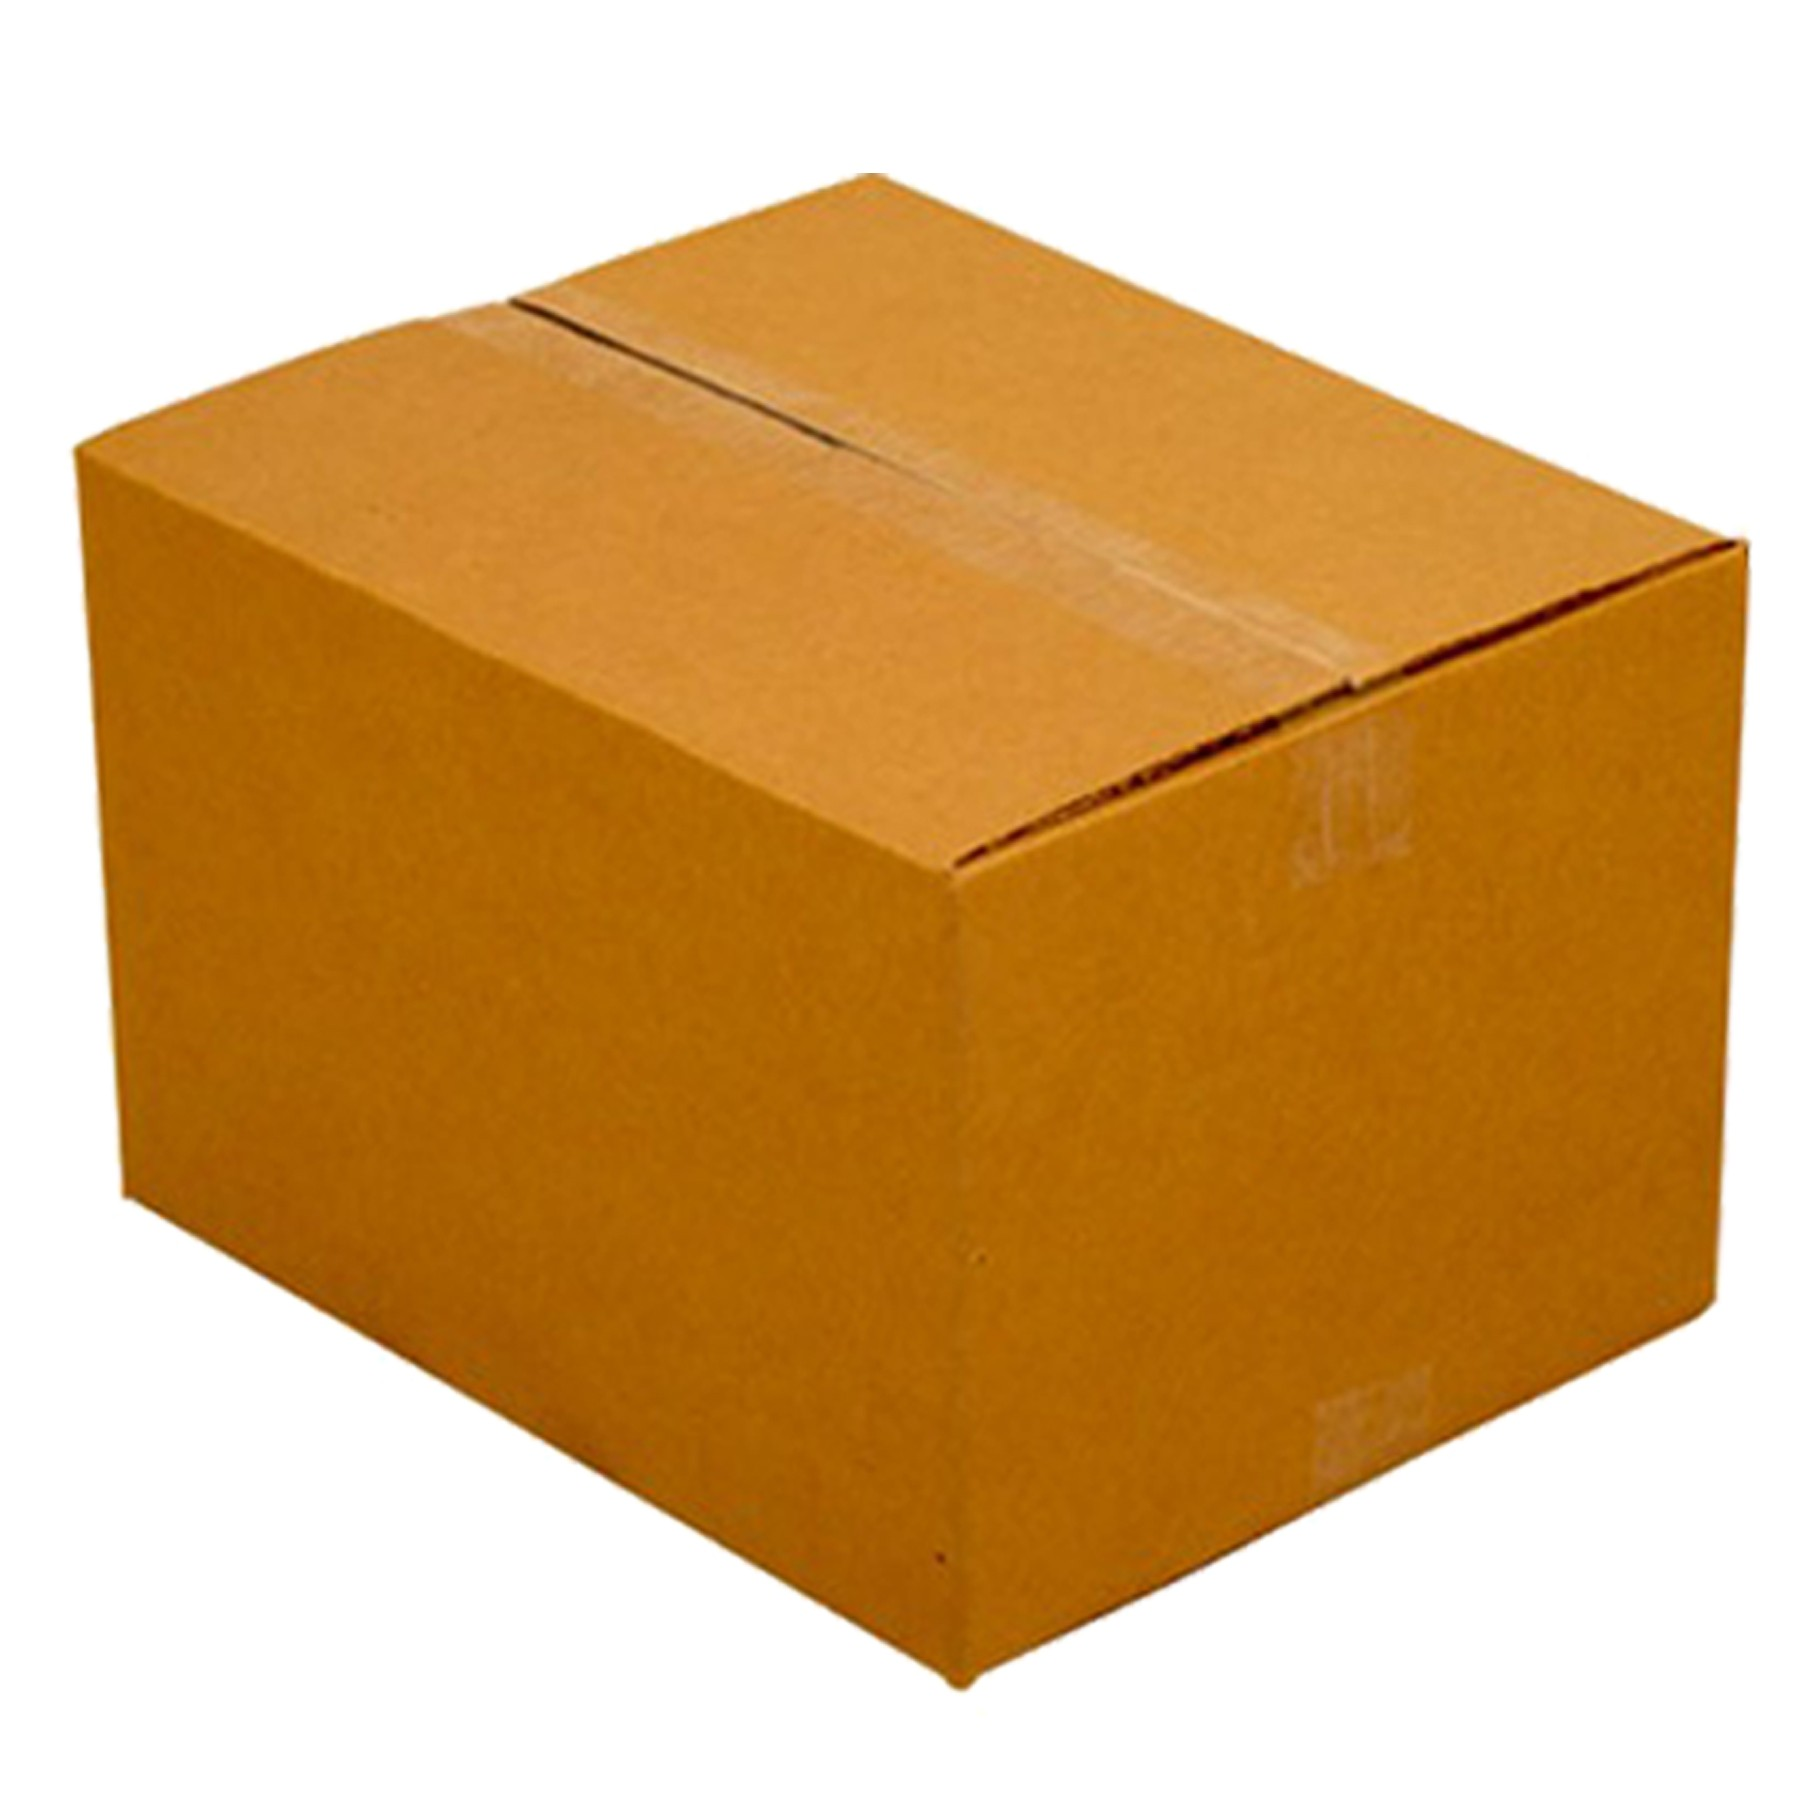 Image result for Card Boxes Our Economy